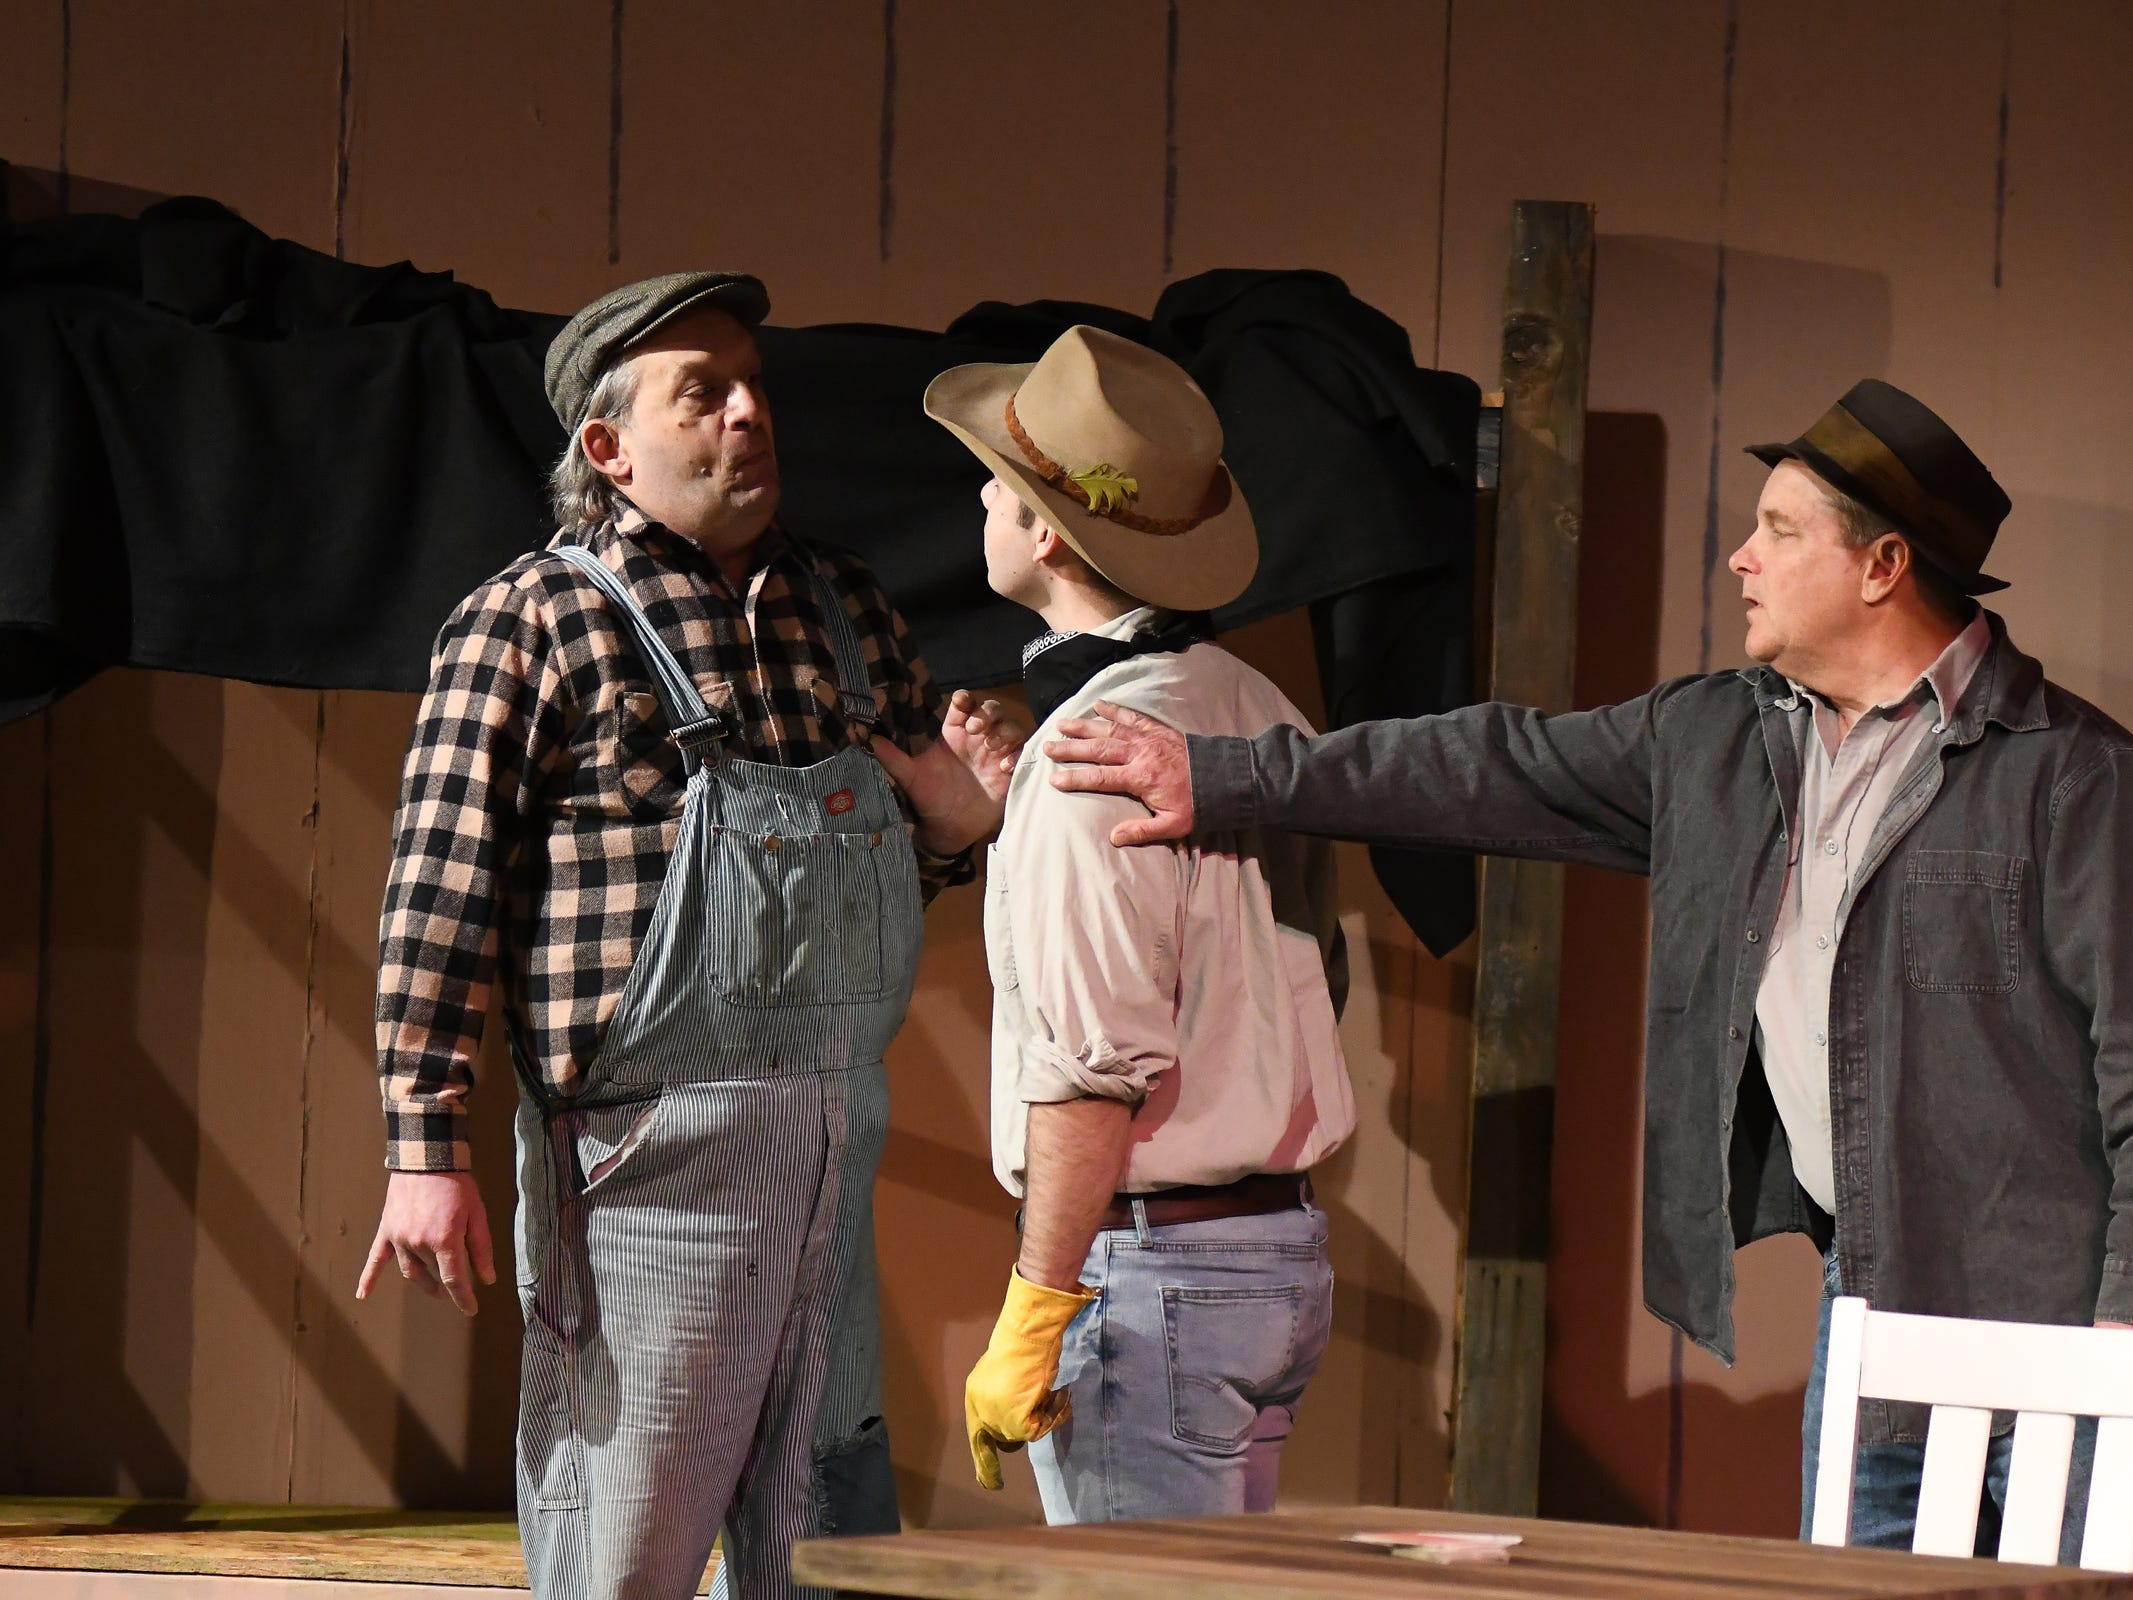 """Tension mounts as Lennie (Don Tamblyn), left, is confronted by hot-tempered Curley (Dustin Davis) as George (Russell Piette) intervenes in a scene from John Steinbeck's """"Of Mice and Men."""" The drama opens Saturday at Riverfront Playhouse."""